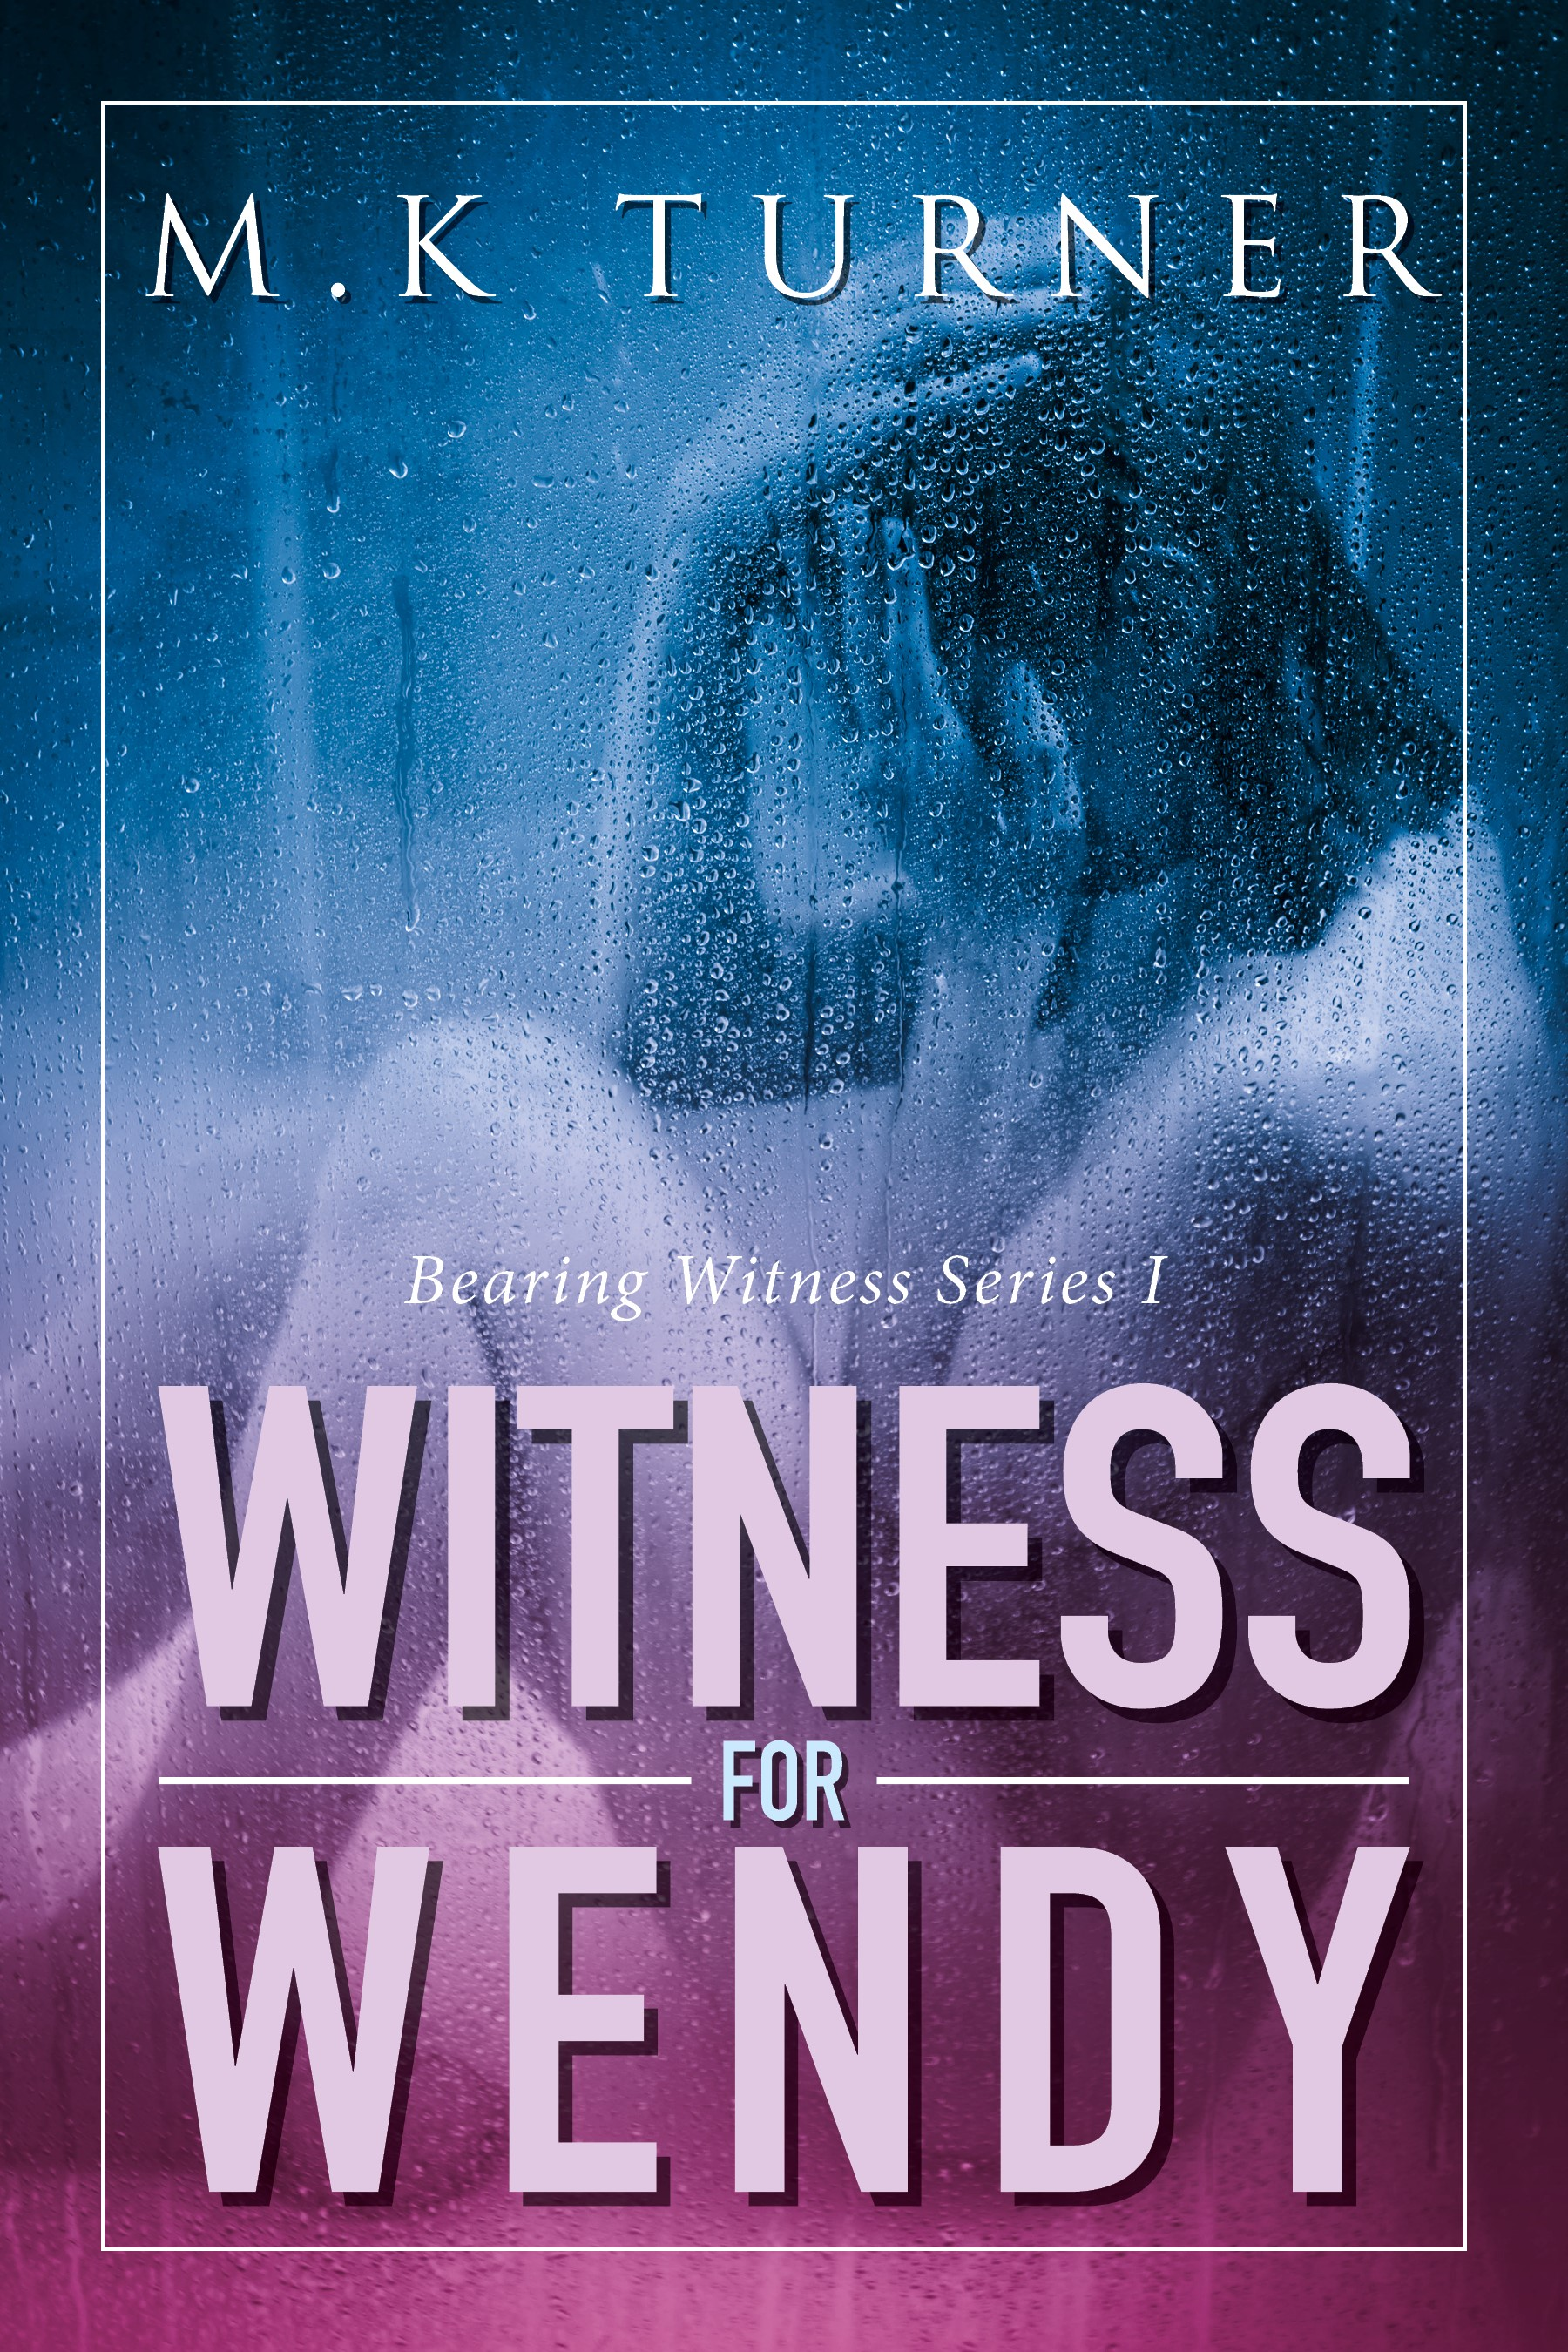 <small><b>1.</b></small> Witness for Wendy